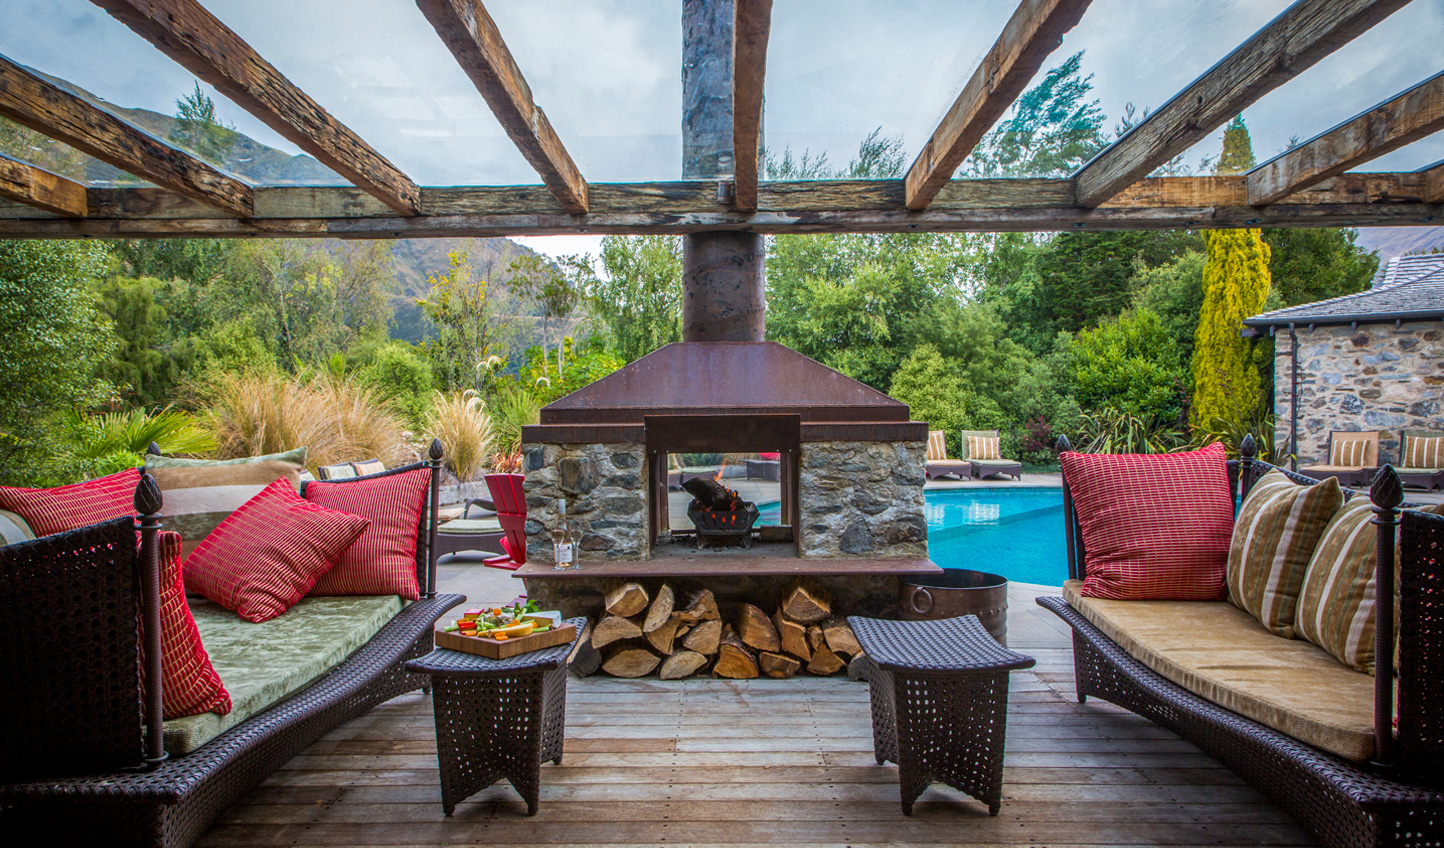 Venture outside and sit poolside by the log-burning fire